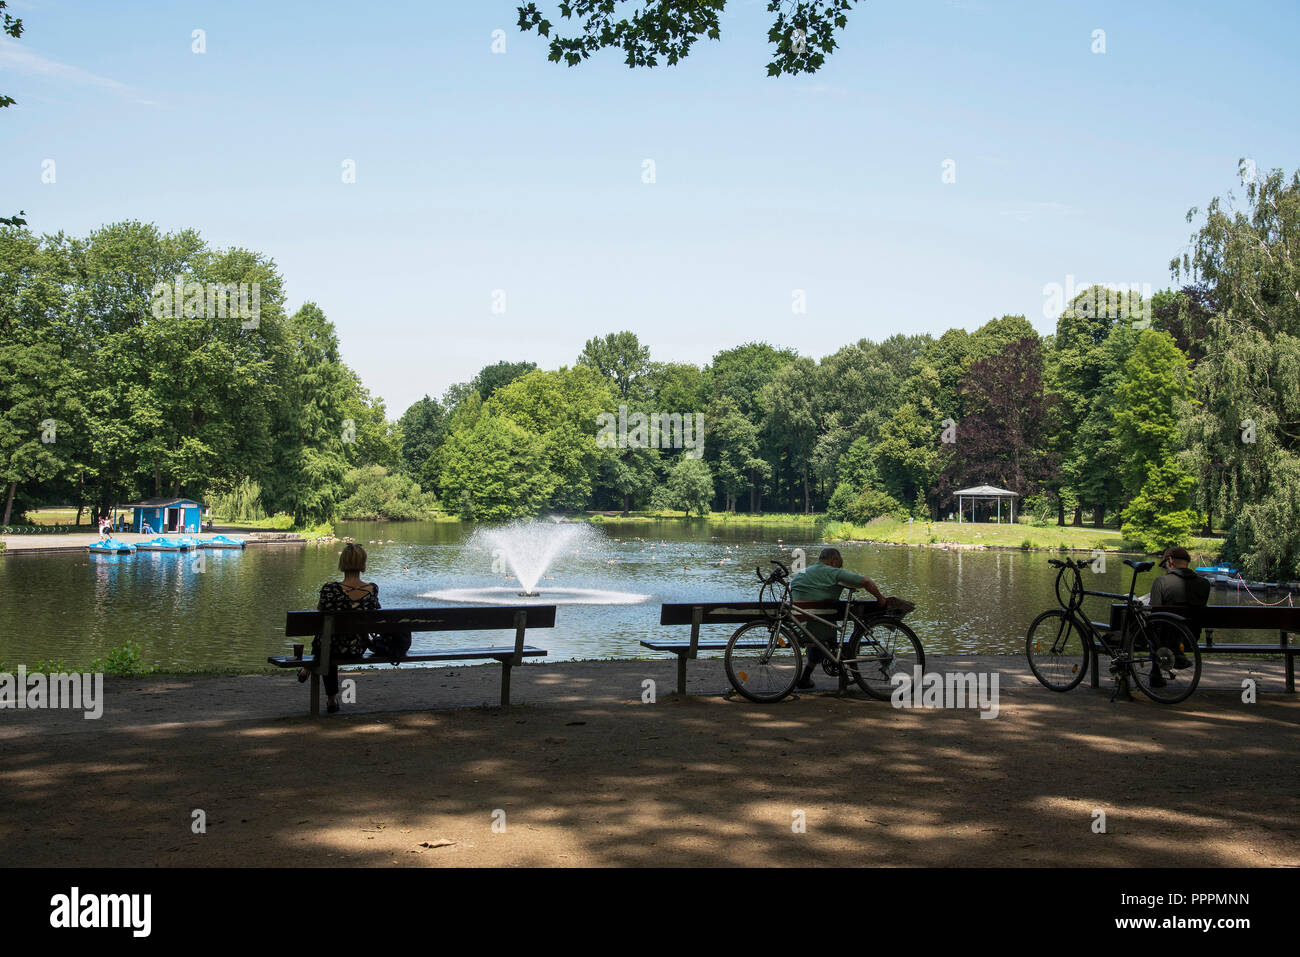 Fredenbaumpark, Dortmund, Ruhr district, North Rhine-Westphalia, Germany - Stock Image